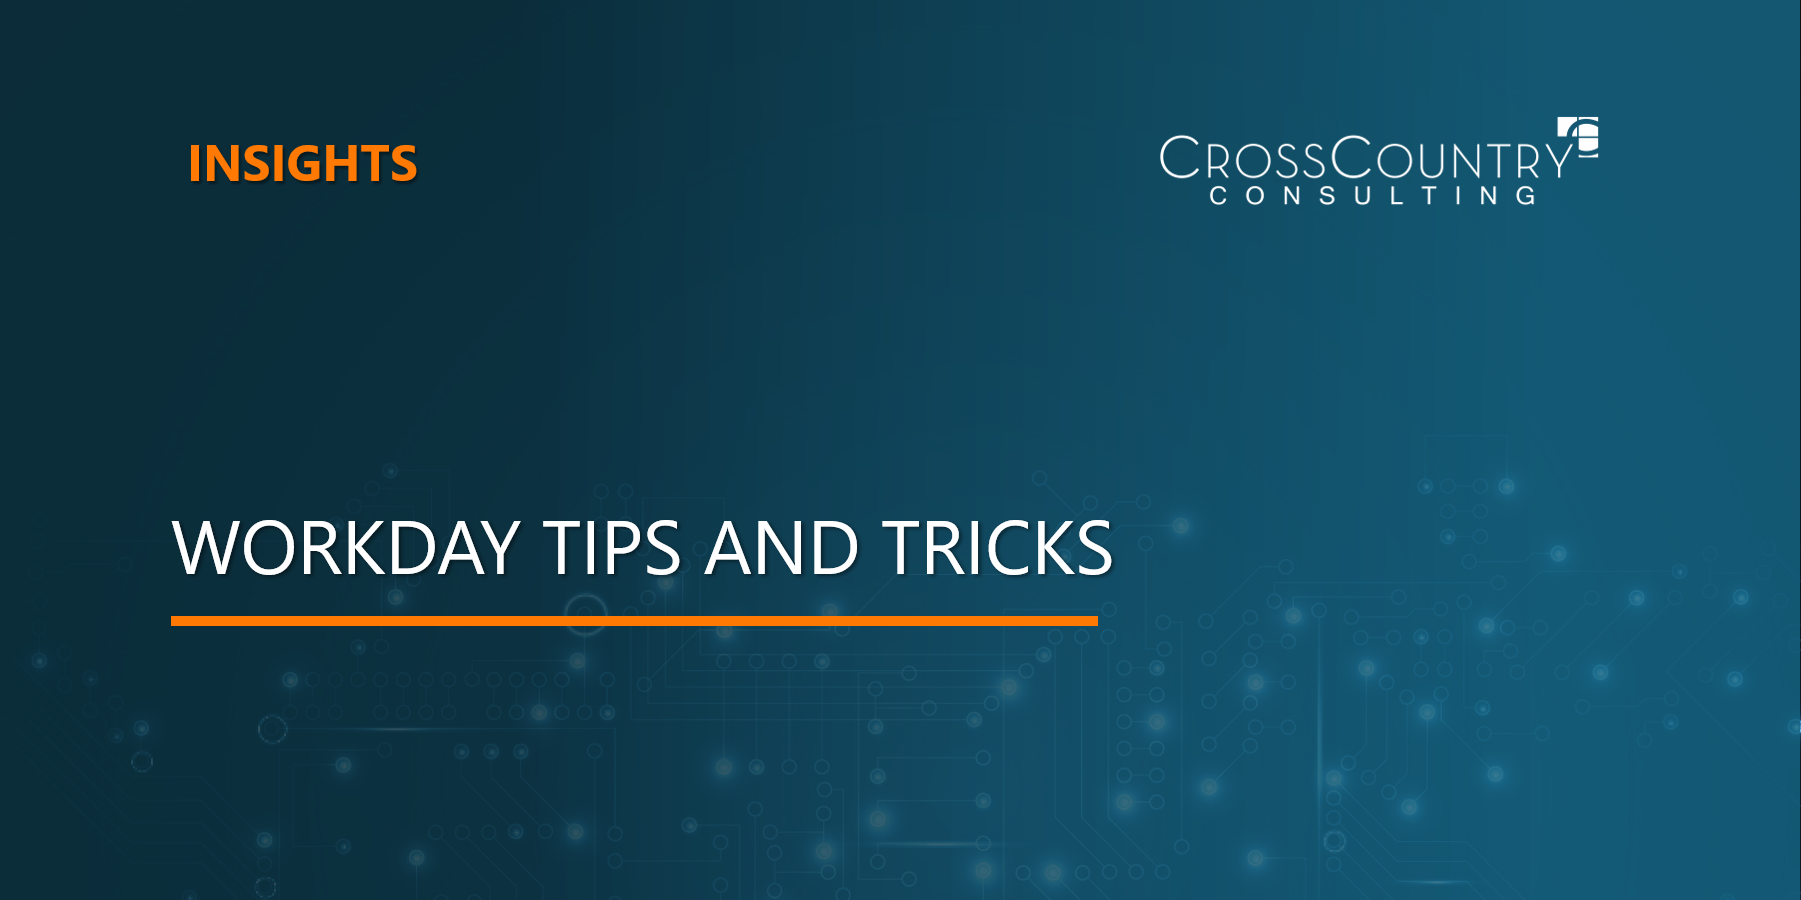 Workday Tips and Tricks